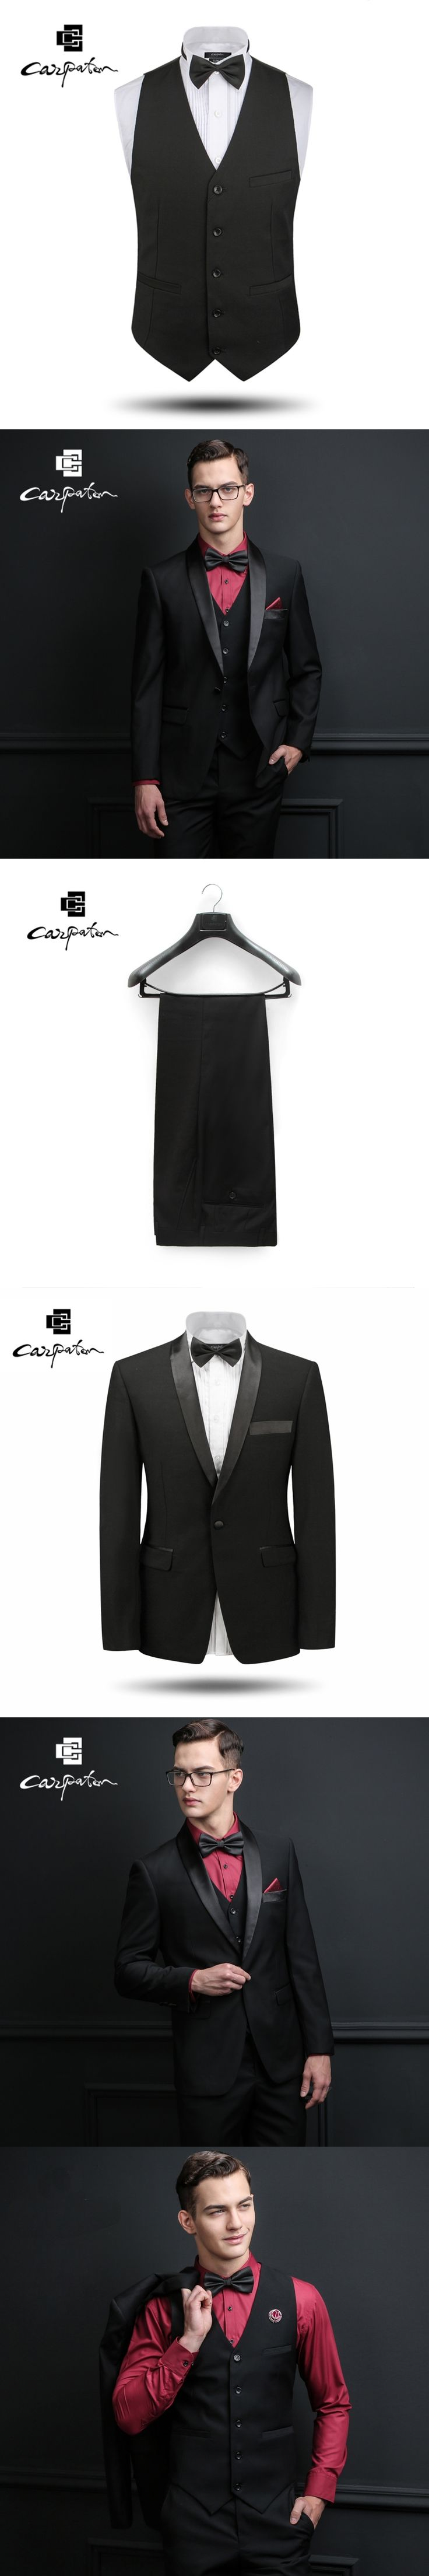 Carpaton Men Suit Classic Black Lattice Designer Three Piece Suit Brand Skinny Tuxedo Large Size Grooms Wedding Suits For Men